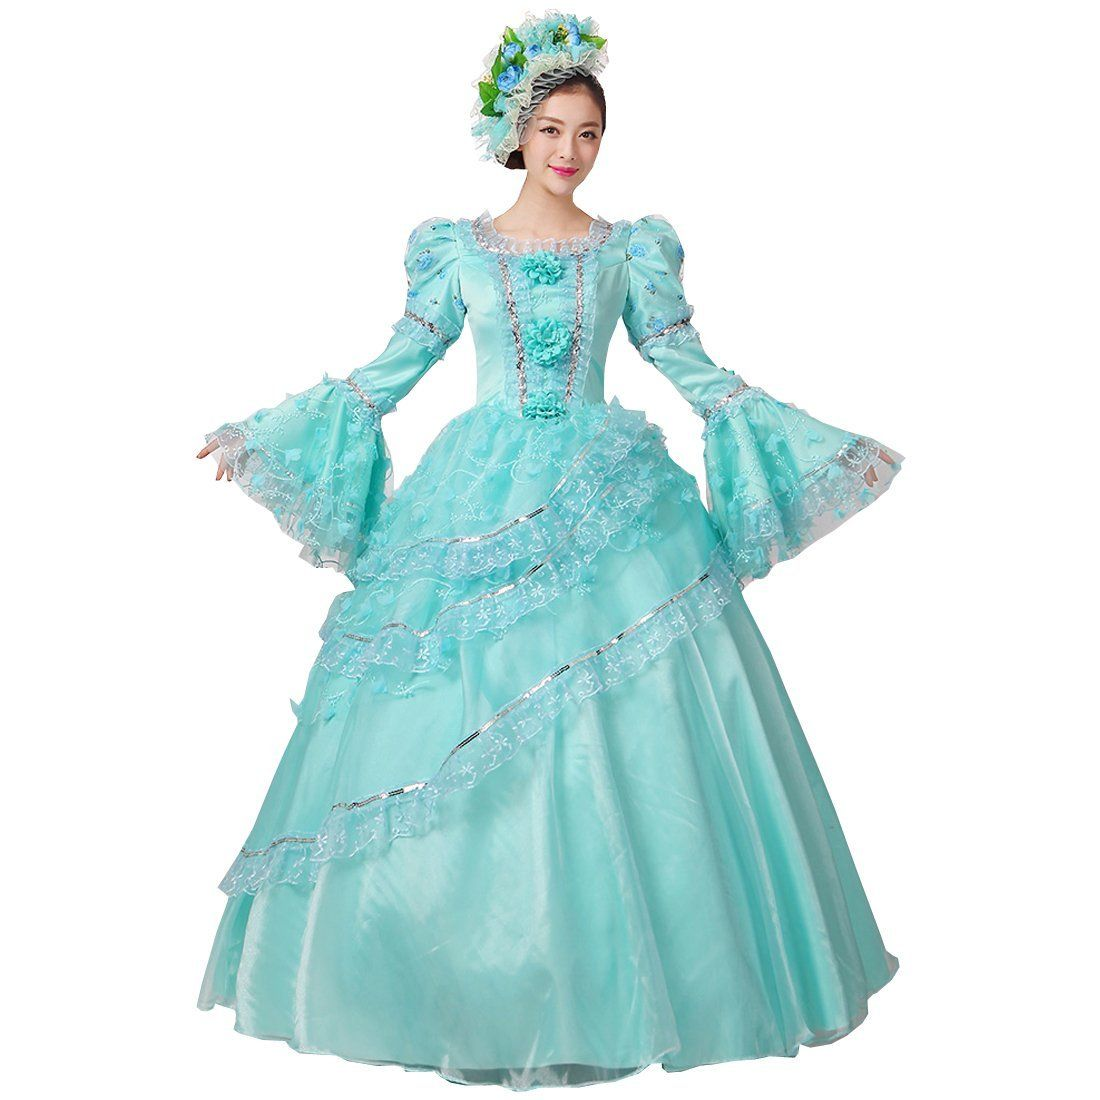 Partiss Women\'s Prom Gothic Victorian Fancy Palace Masquerade ...